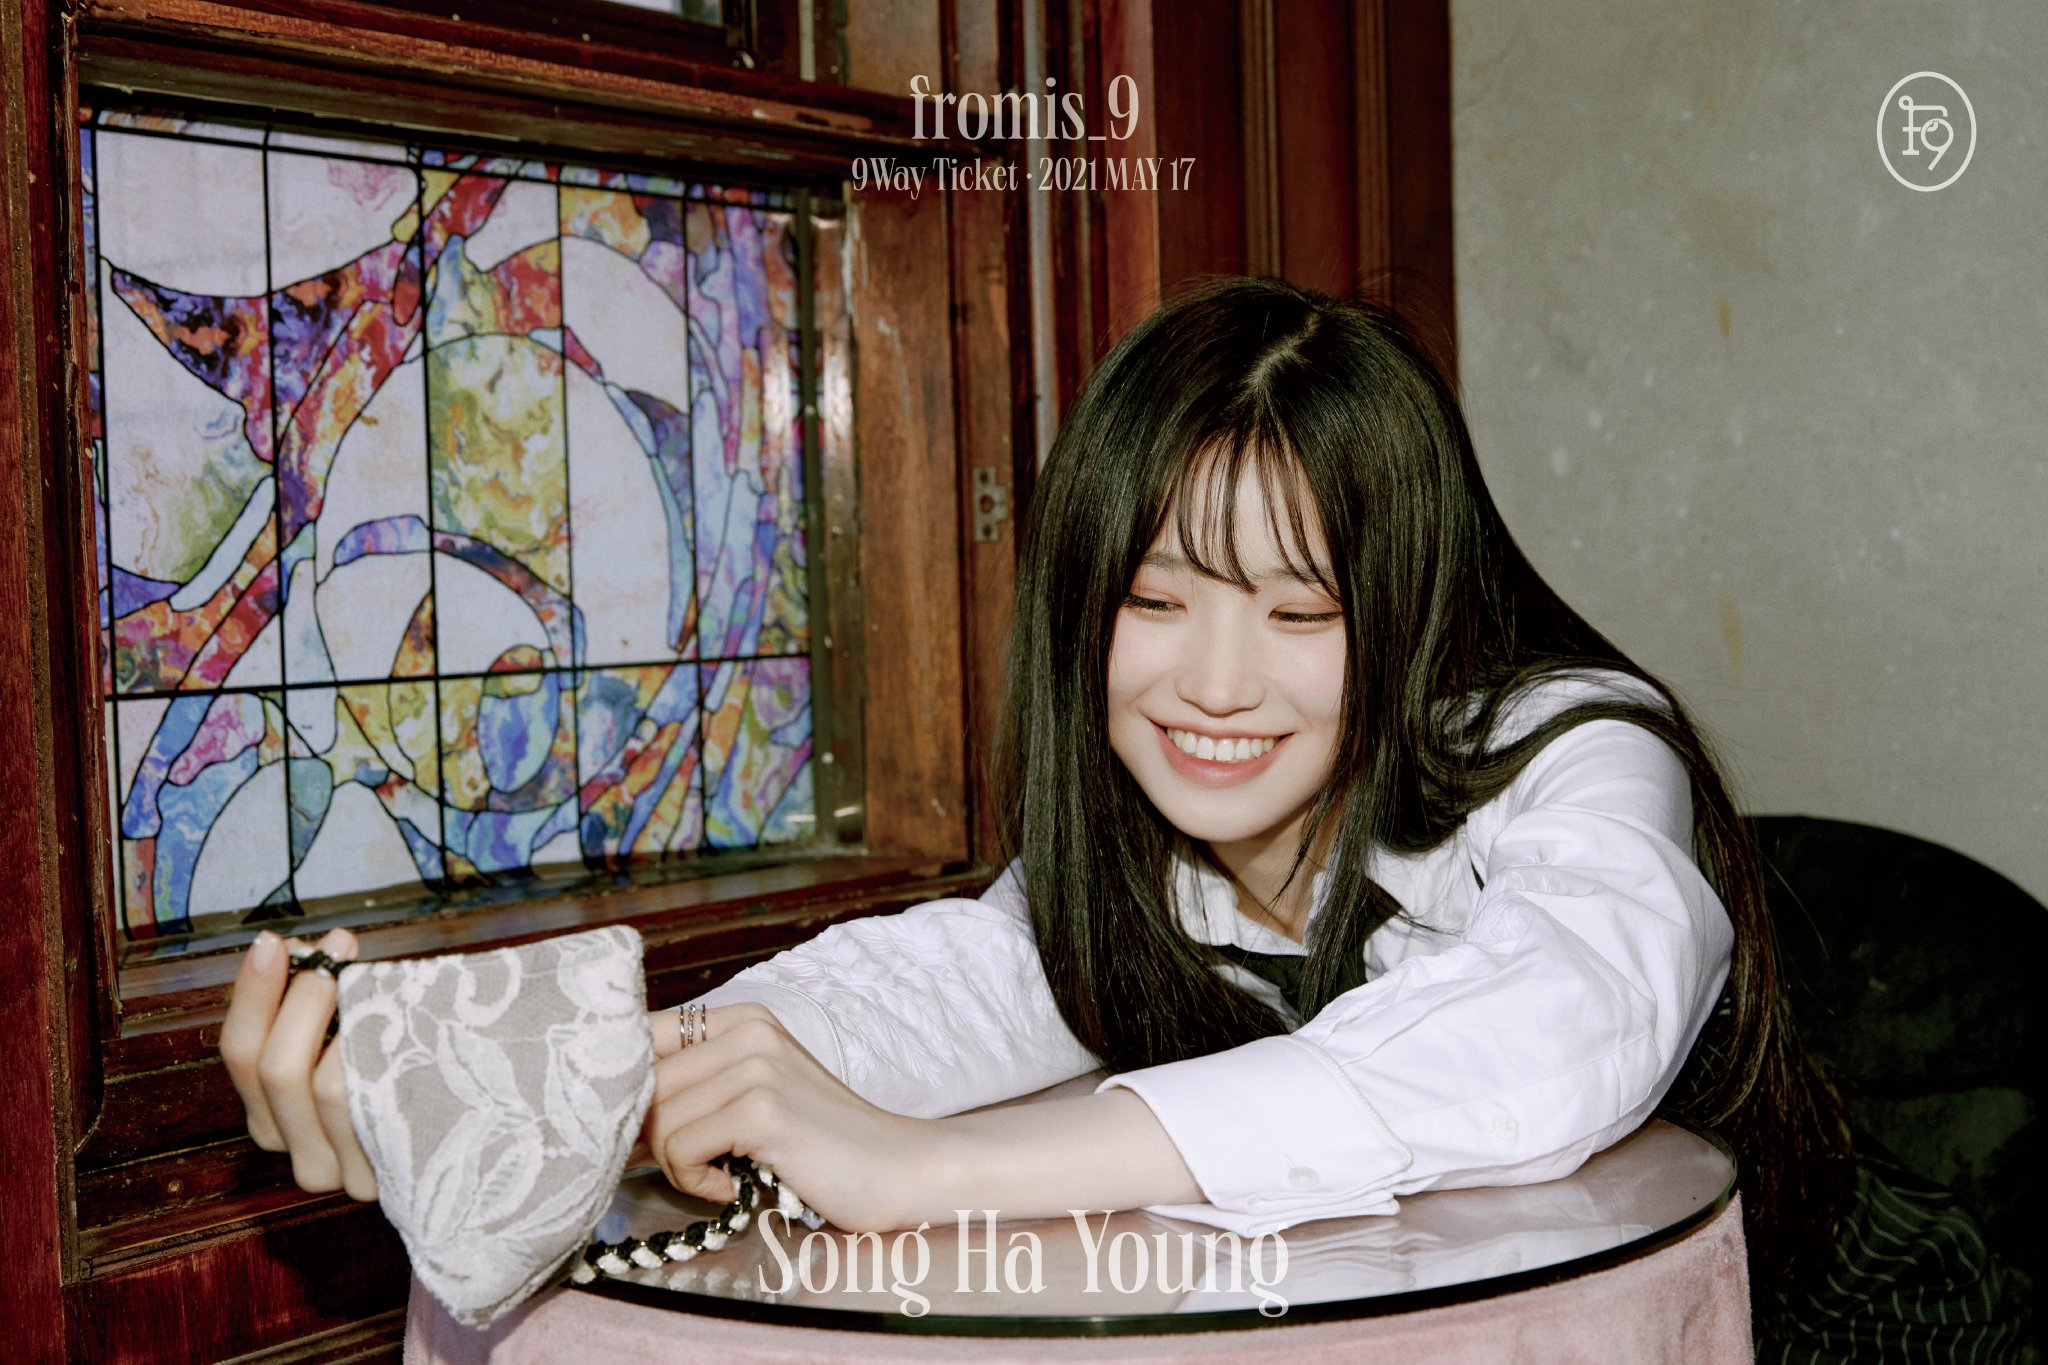 Song Ha Young